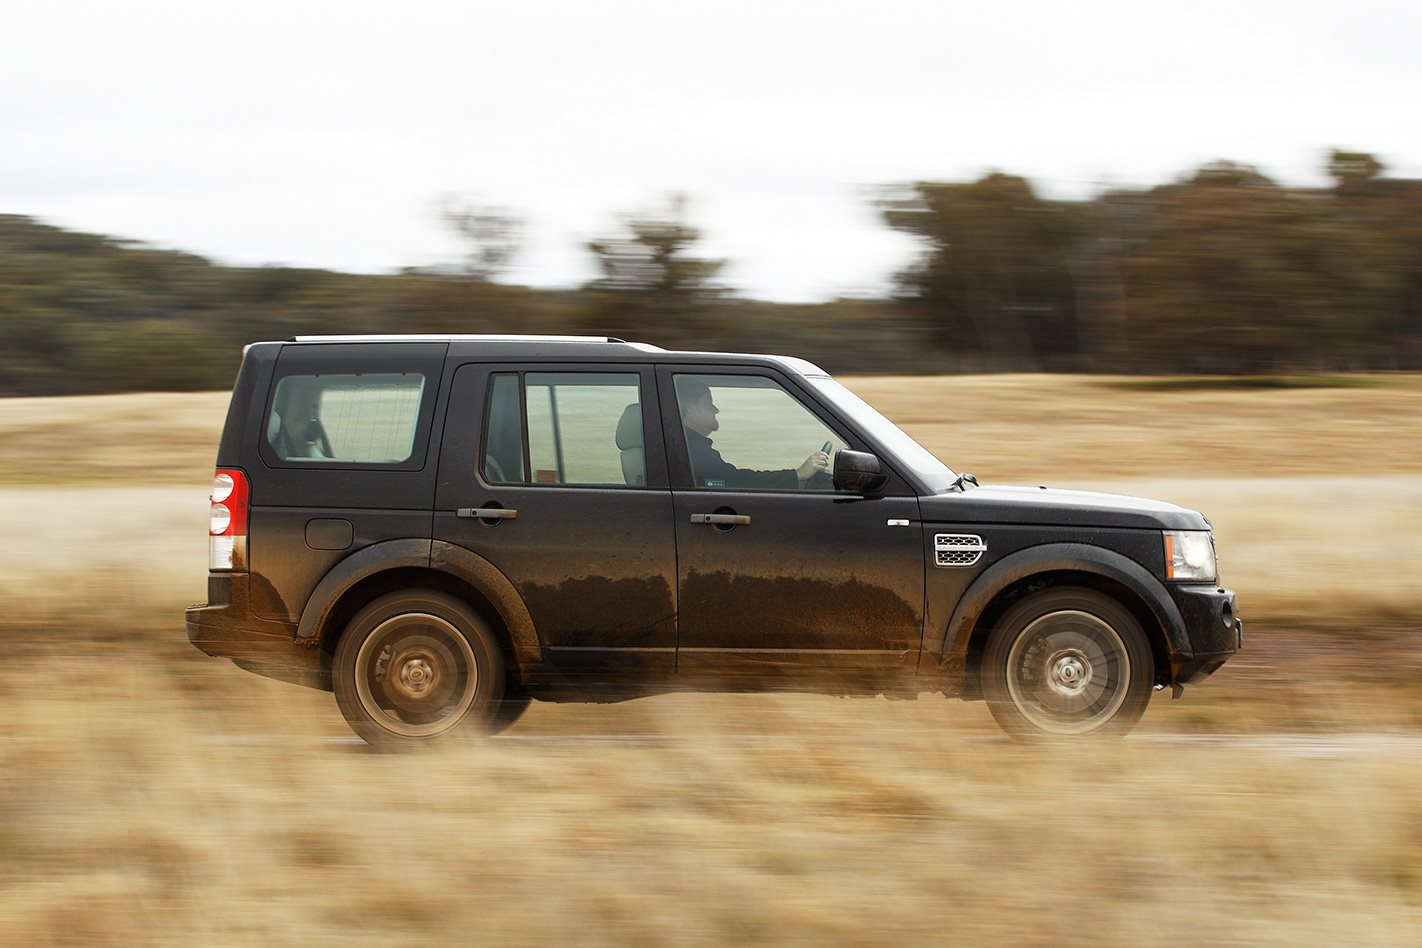 2011 Land Rover Discovery 4 side.jpg